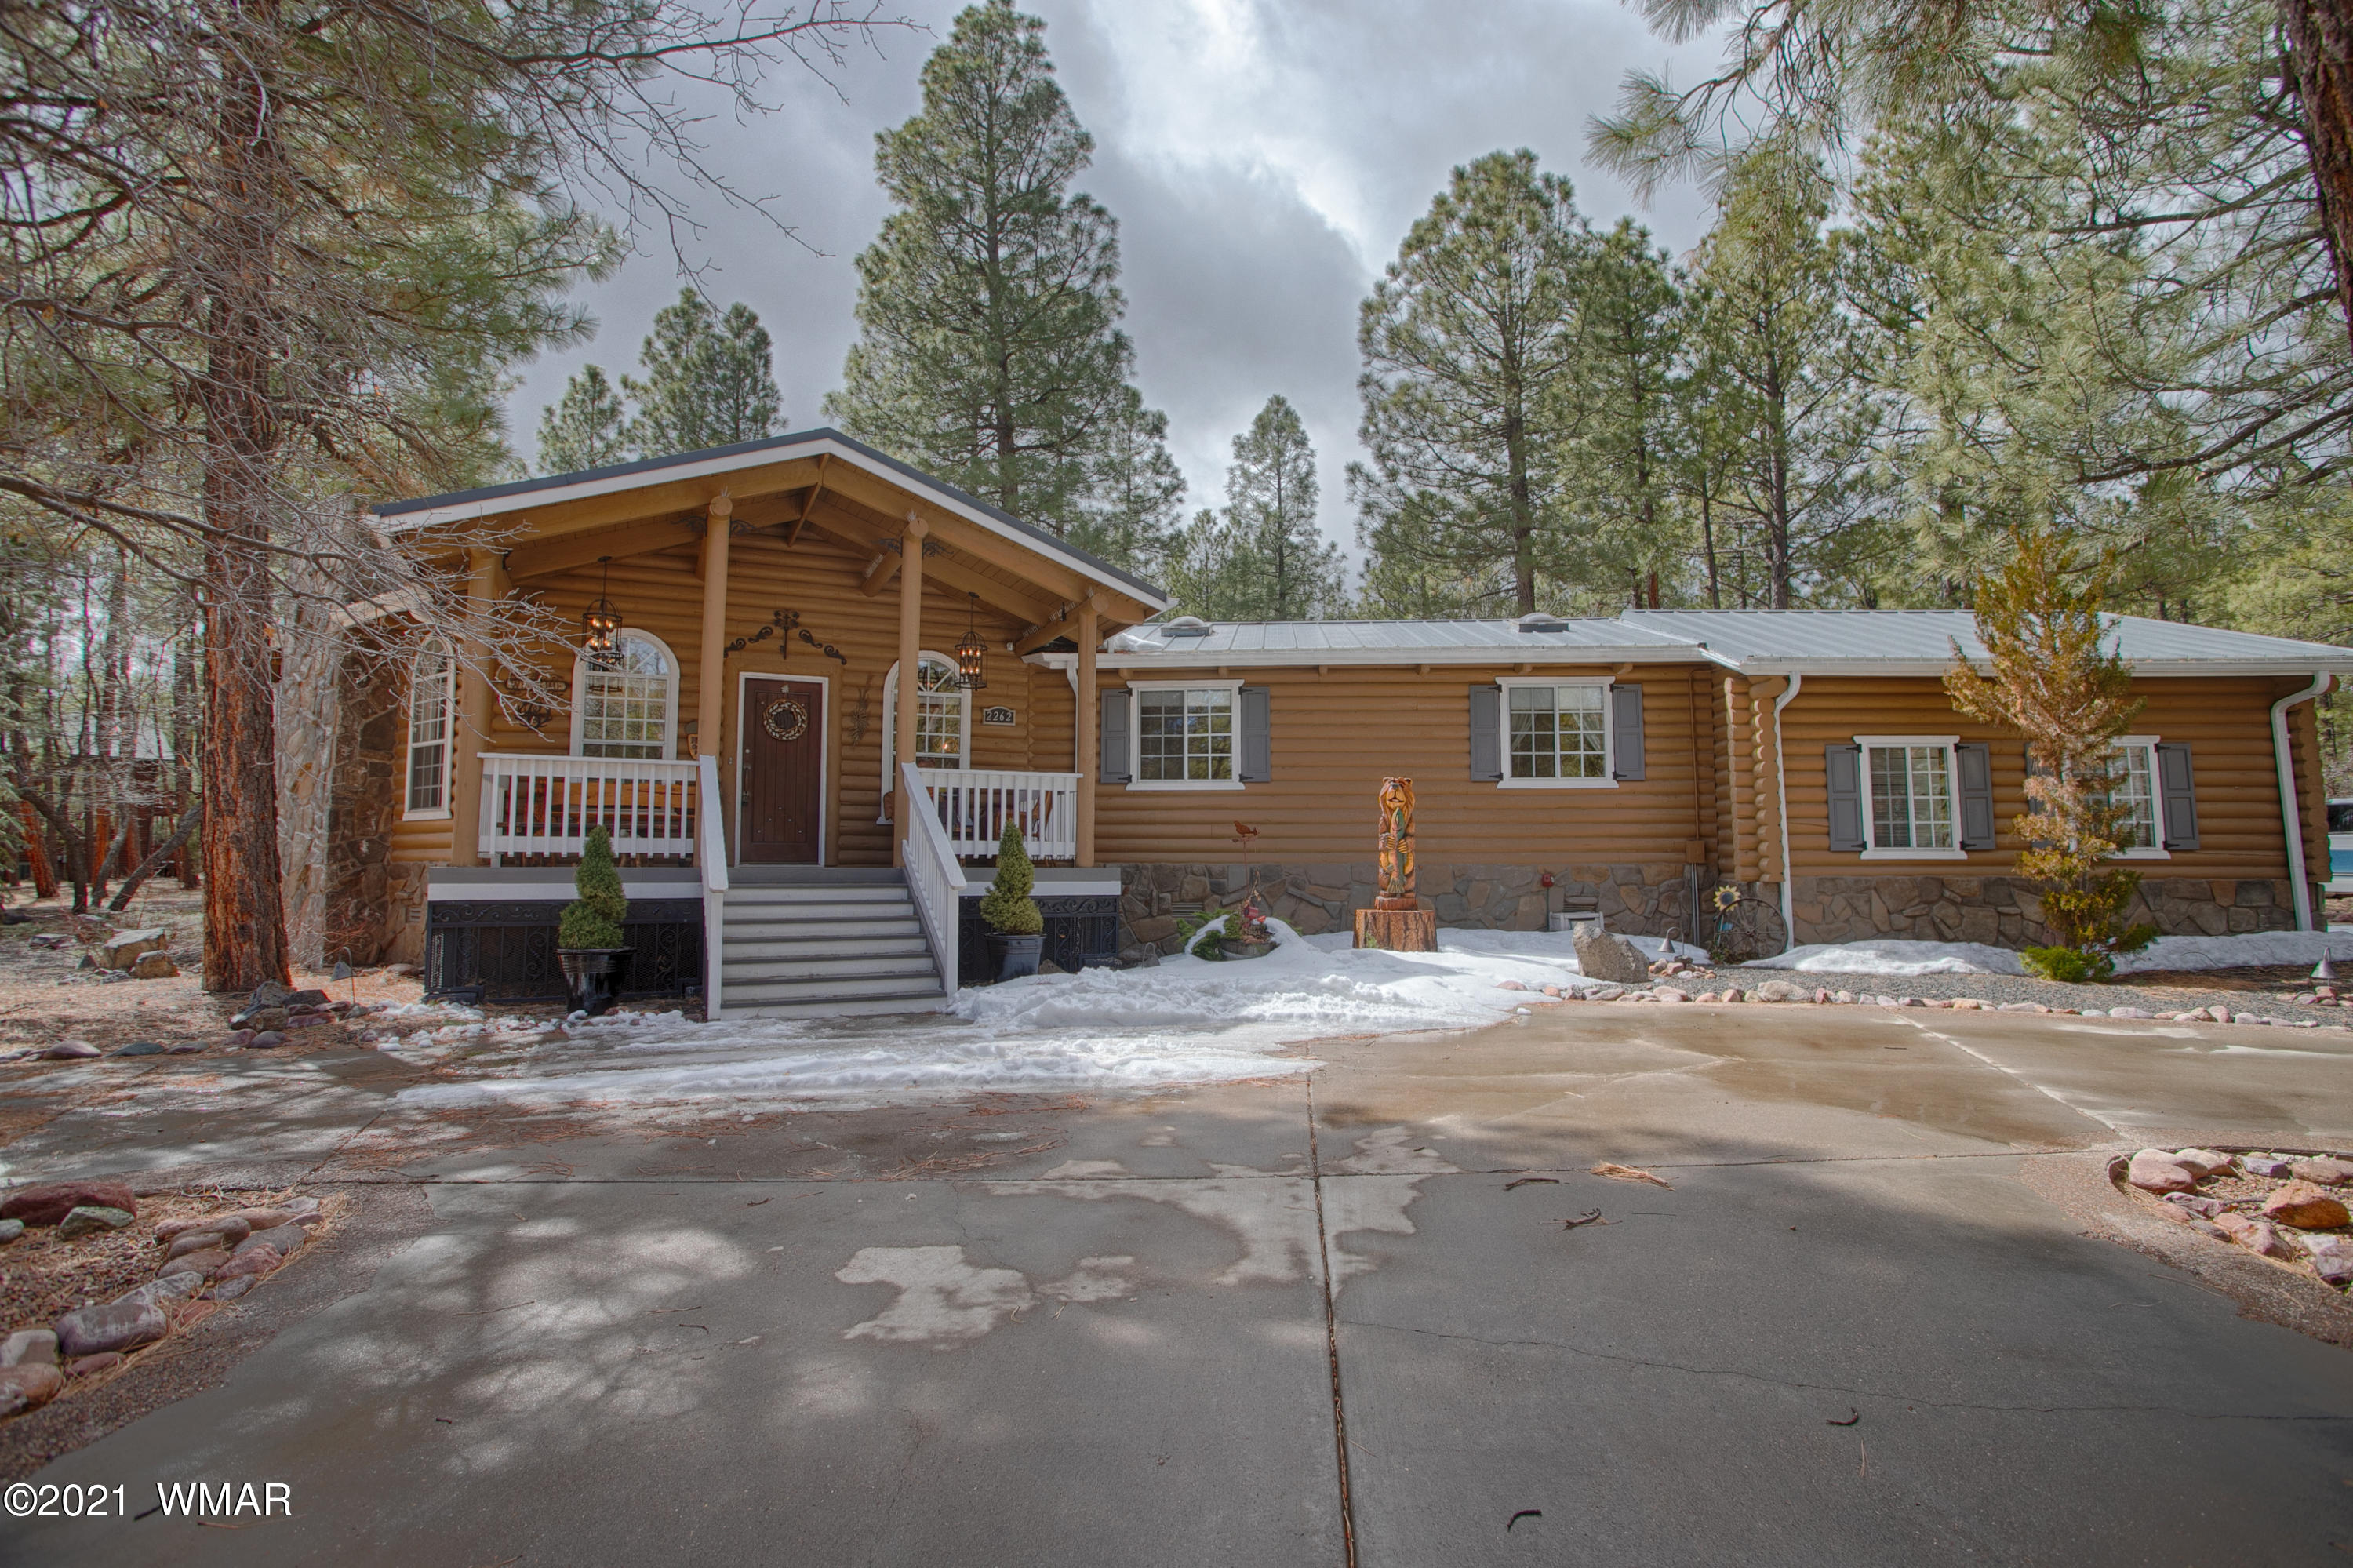 Incredible log home in Pinetop, AZ.  Unique octogan living room with vaulted ceilings and open kitchen with two separate wings. One wing houses the  master suite and game room and the other wing has two bedrooms, bath, and laundry, leading to 2-car garage.  Gorgeously decorated, this home is being sold furnished.  Home is on 2.5 acres and has a private well.  Covered front and back decks. Back yard area is partially fenced.  Outdoor spa is next to a small stone building (500 sf) that has heat and electricity to it.  This could be a workshop or whatever you want it to be.  It also houses the well equipment.   No HOA.   One of the sellers is licensed to sell real estate in Arizona.